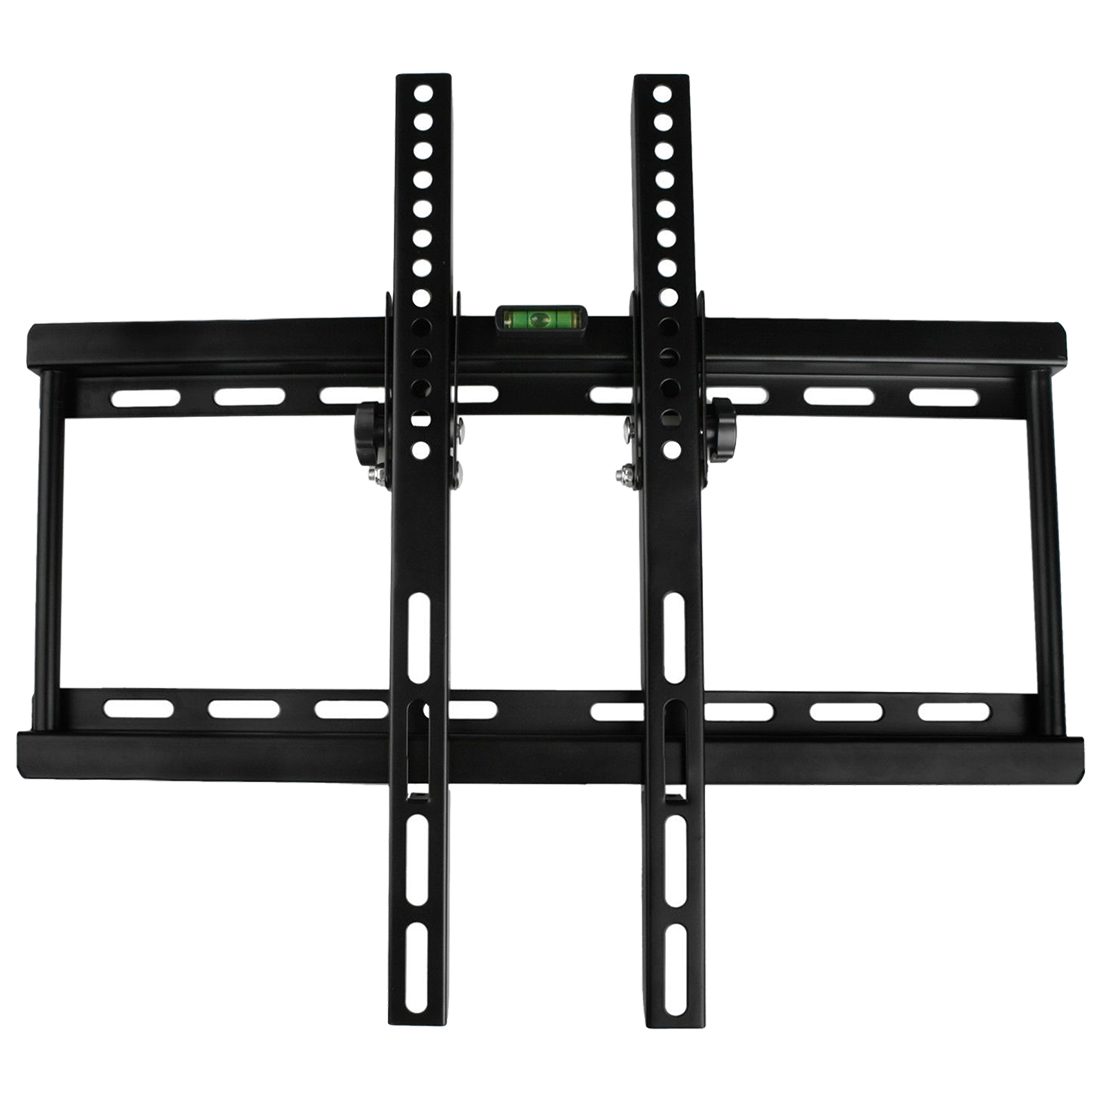 Flat Slim Tv Wall Mount Bracket 23 28 30 32 40 42 48 50 55 Inch Led Lcd Plasma Bathroom Hardware